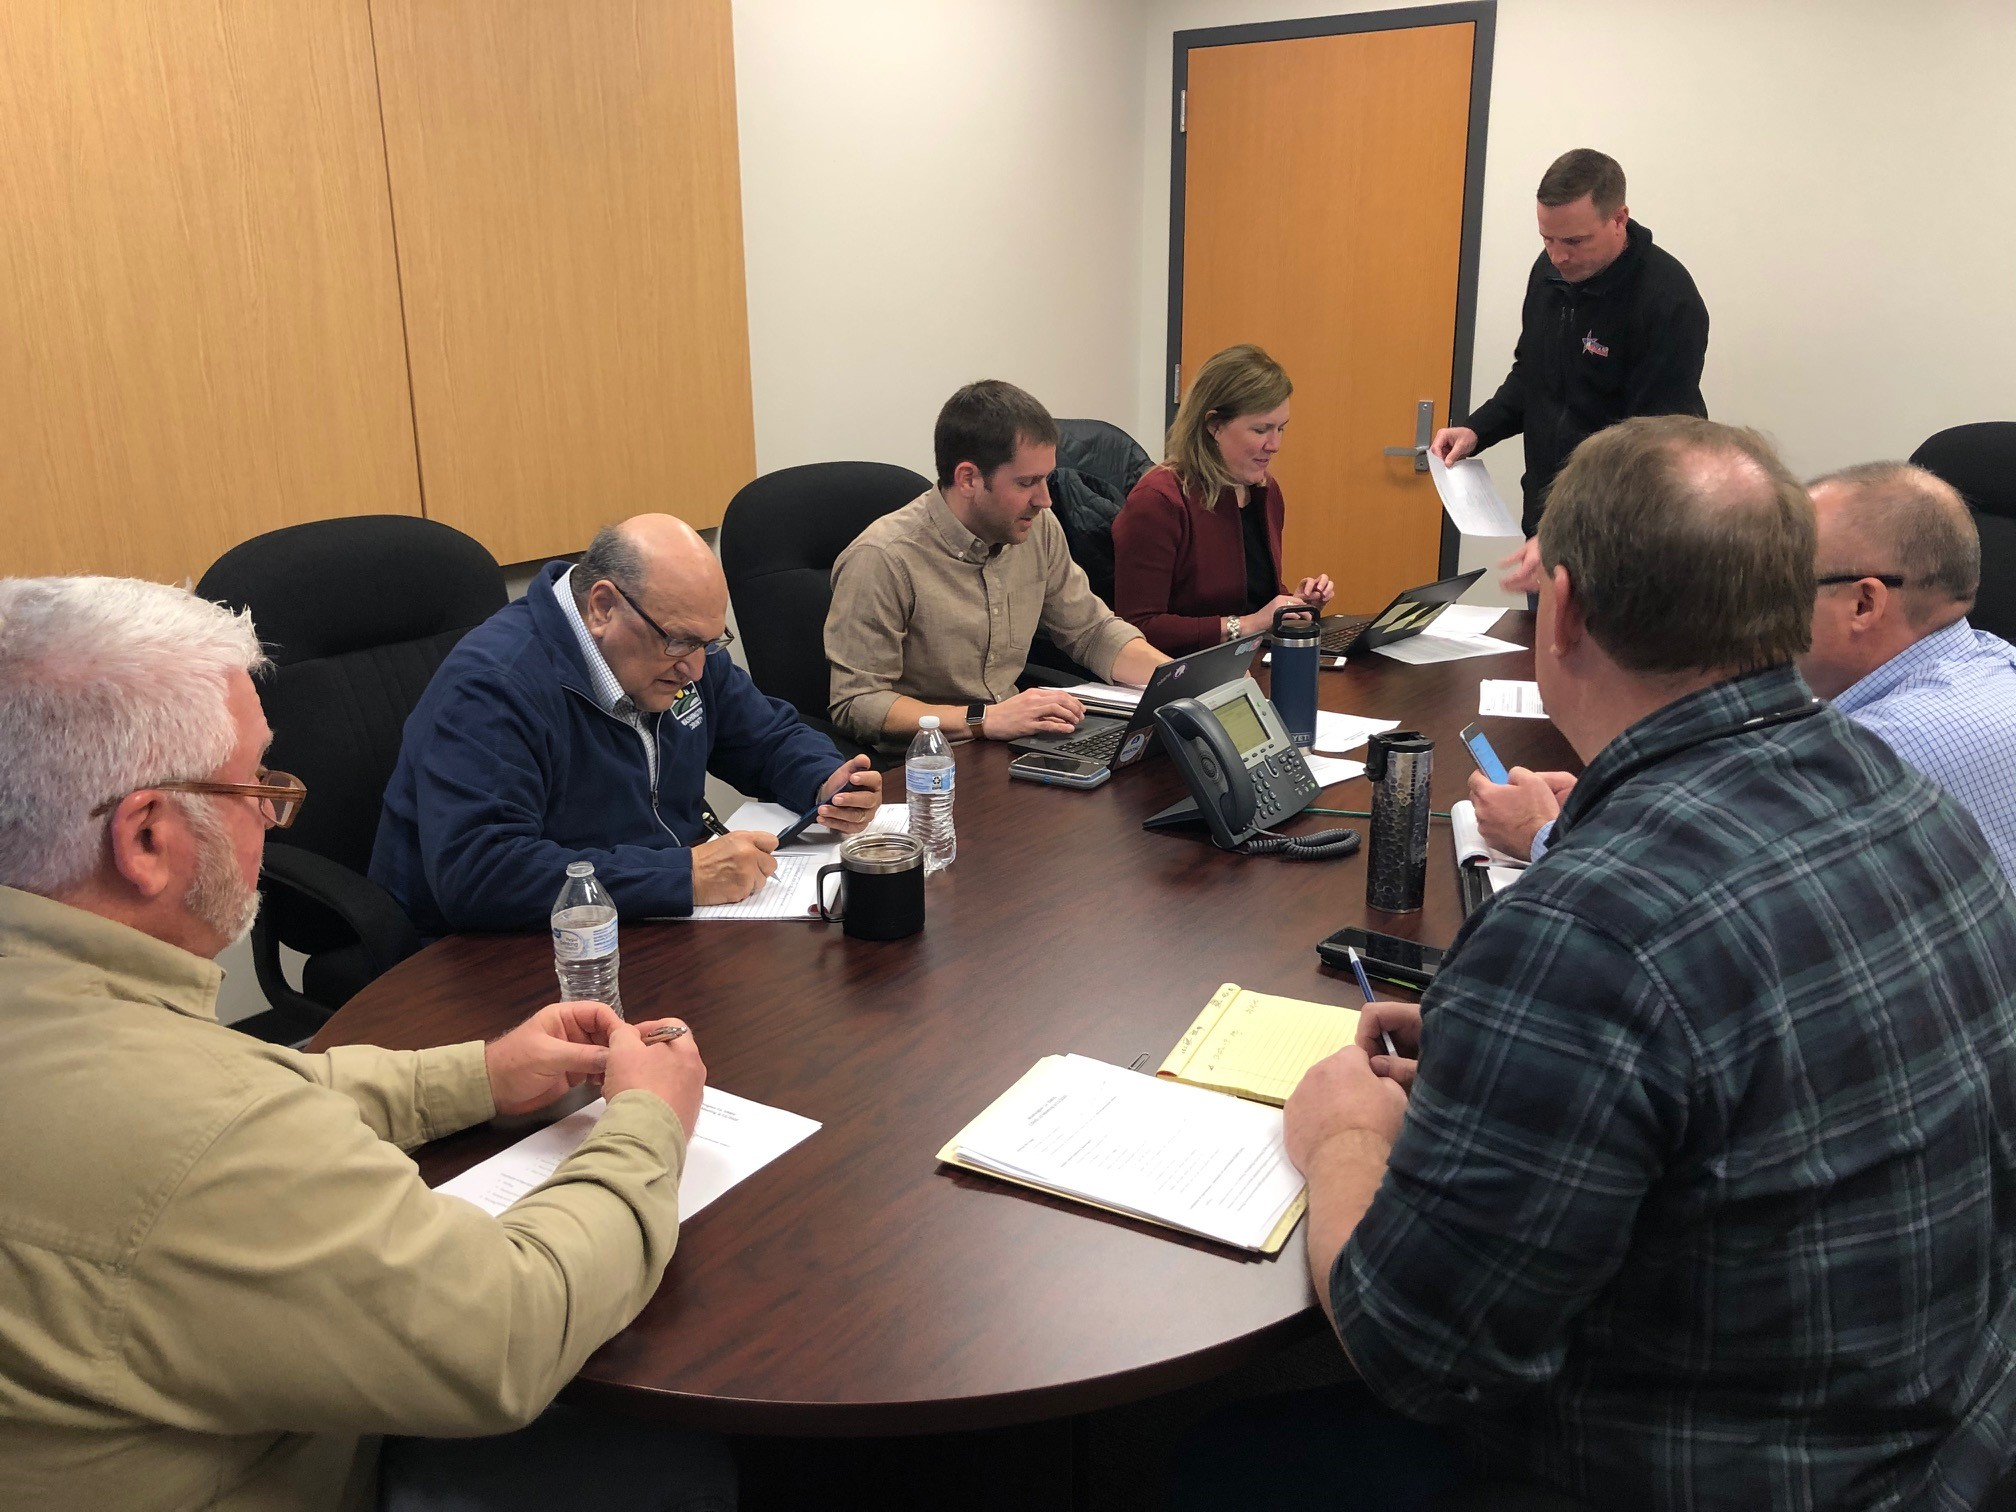 Washington County Begins Emergency Protocols to Mitigate COVID-19 Spread